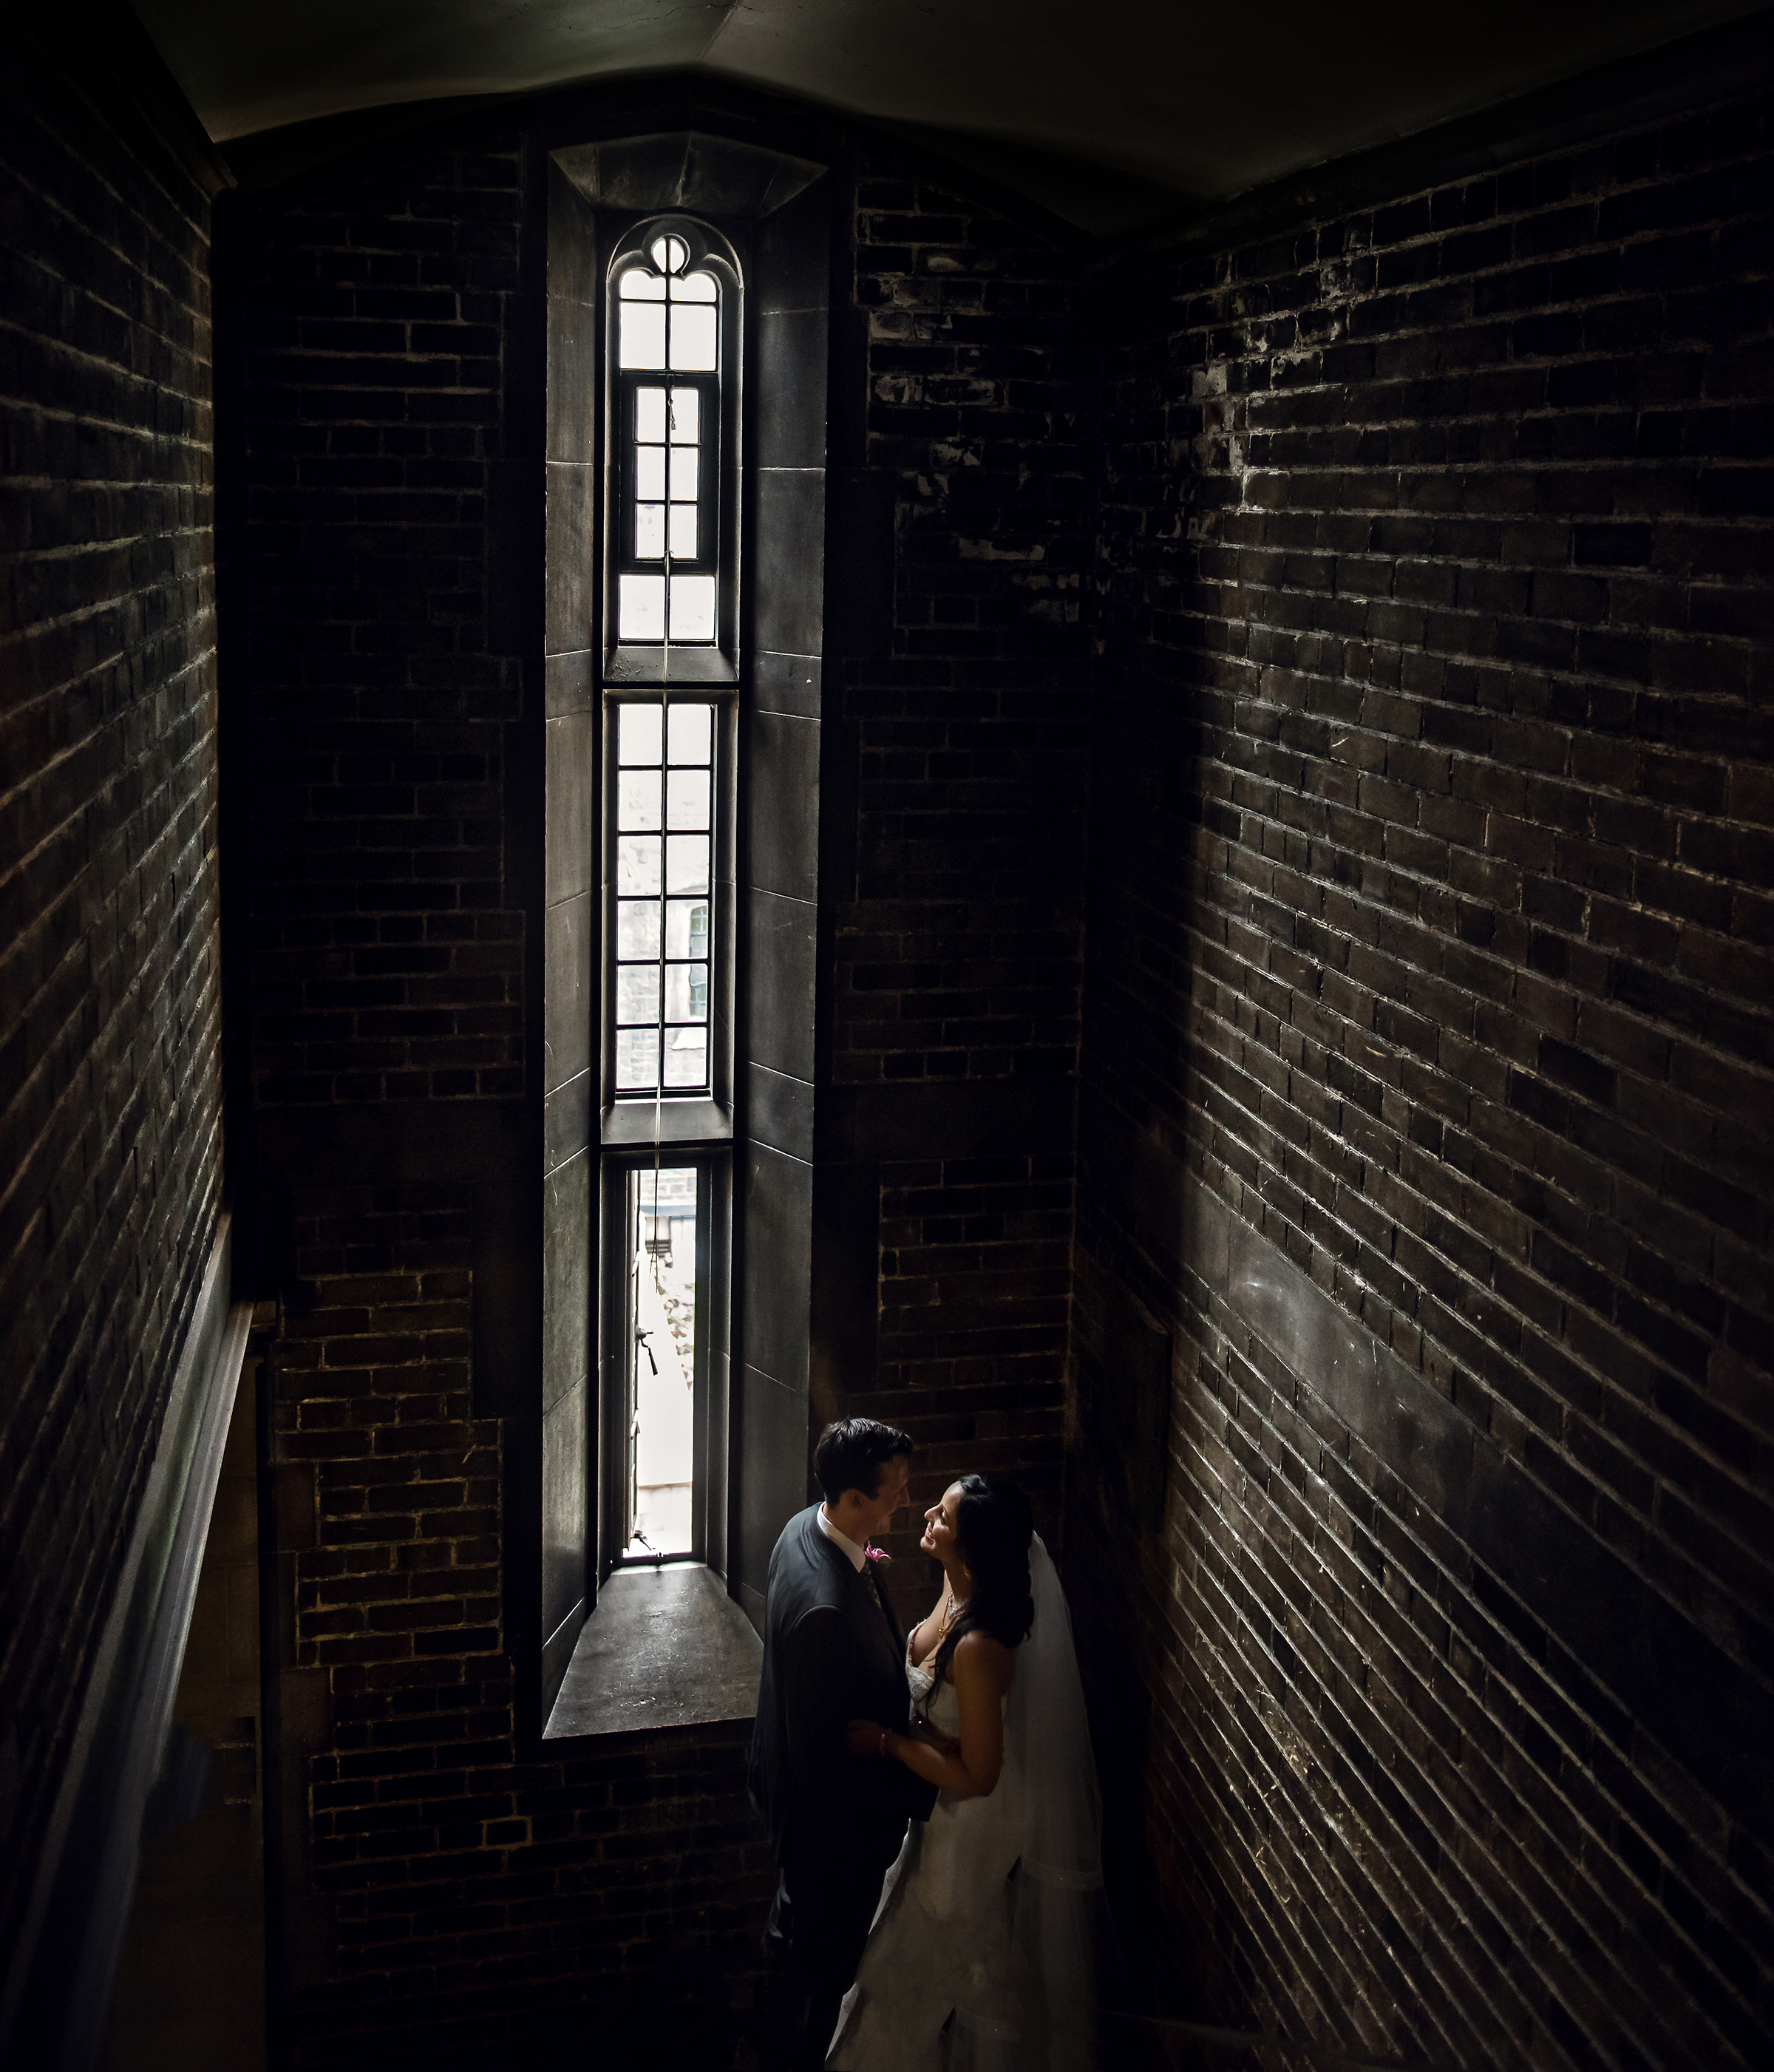 Couple in bricked interior - photo by David & Sherry Photography